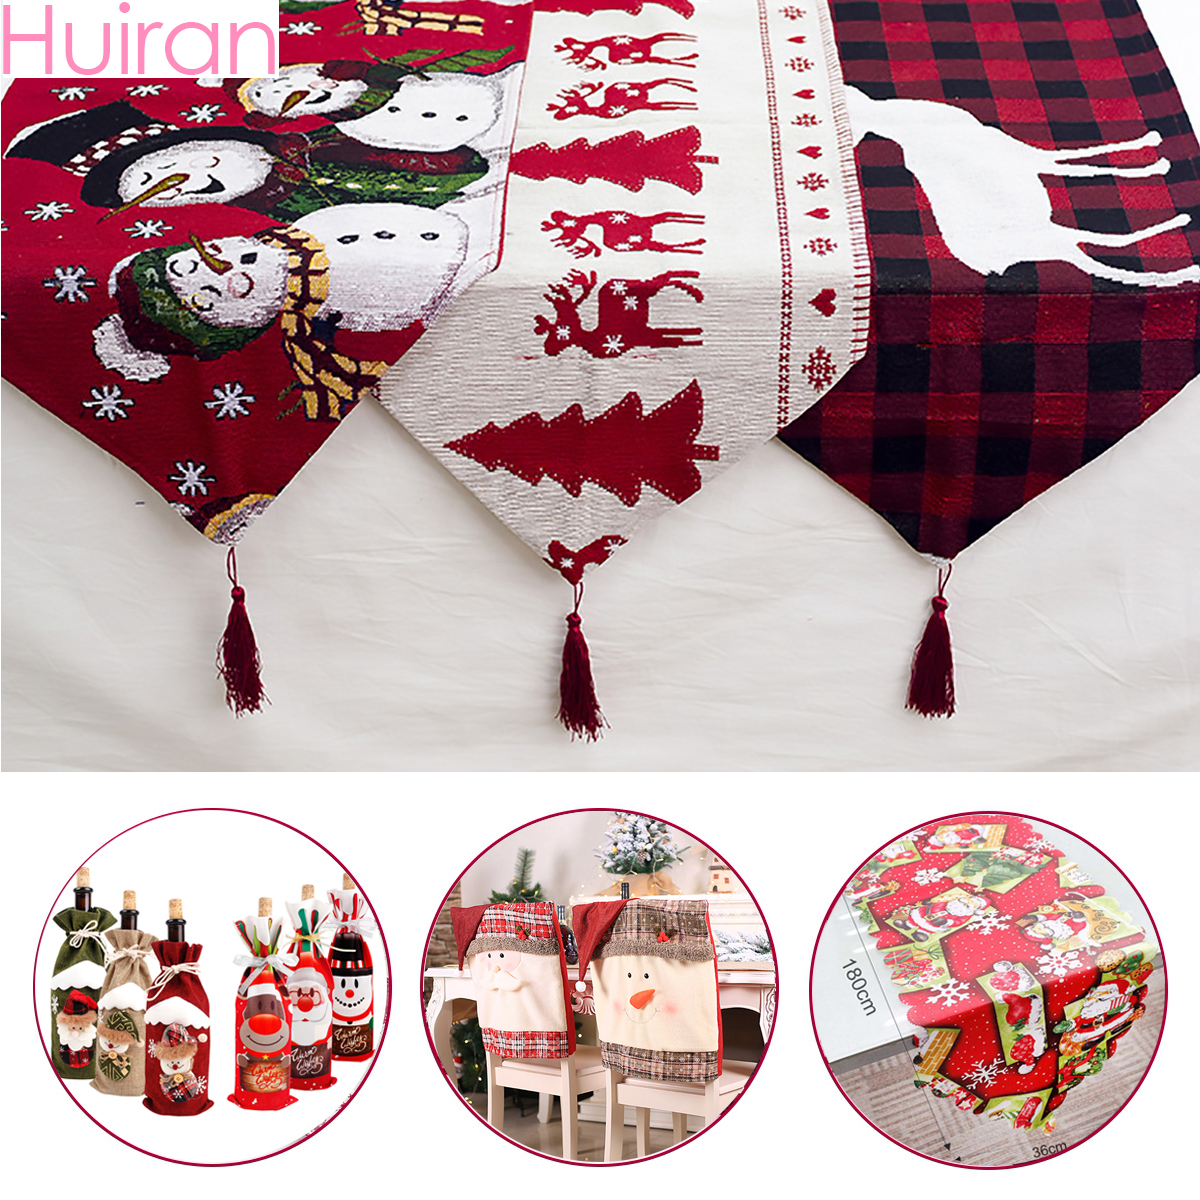 Huiran Linen Christmas Elk Snowman Table Runner Merry Christmas Decorations For Home 2019 Xmas Ornaments New Year 2020 Navidad